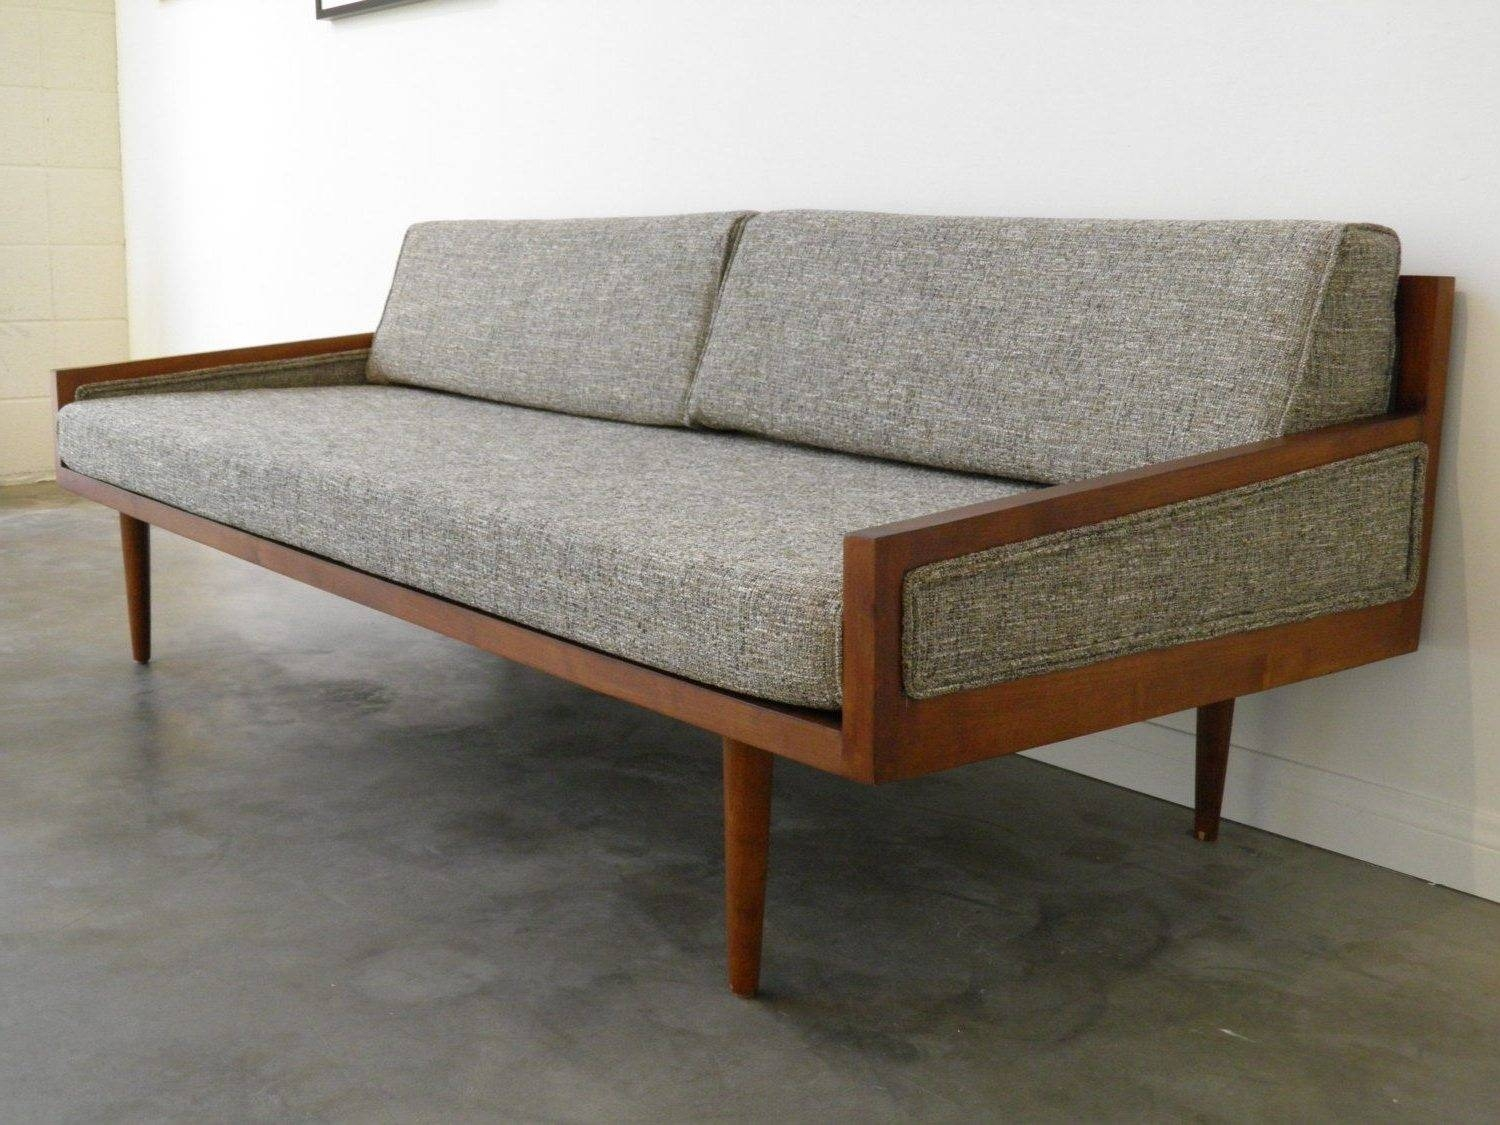 Remarkable Mid Century Modern Sleeper Sofa Coolest Cheap Furniture intended for Cool Sleeper Sofas (Image 23 of 30)